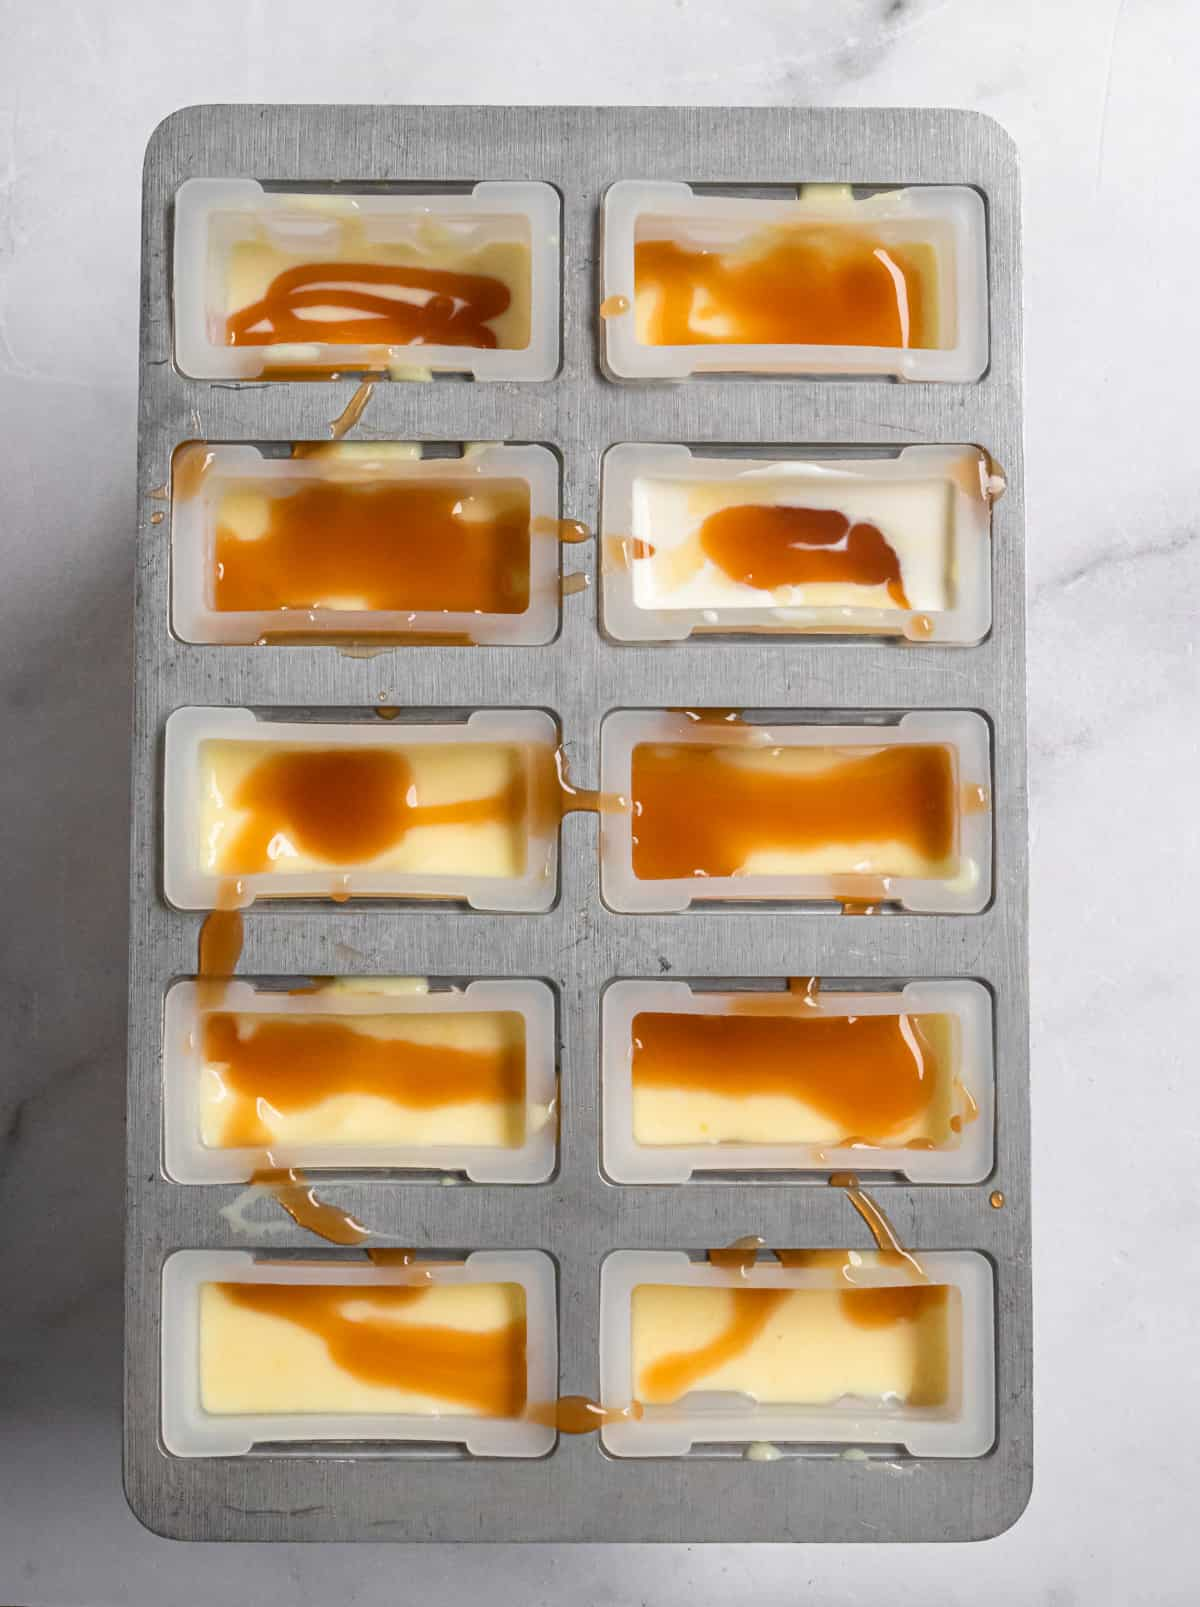 Popsicle molds filled with mixture and caramel.